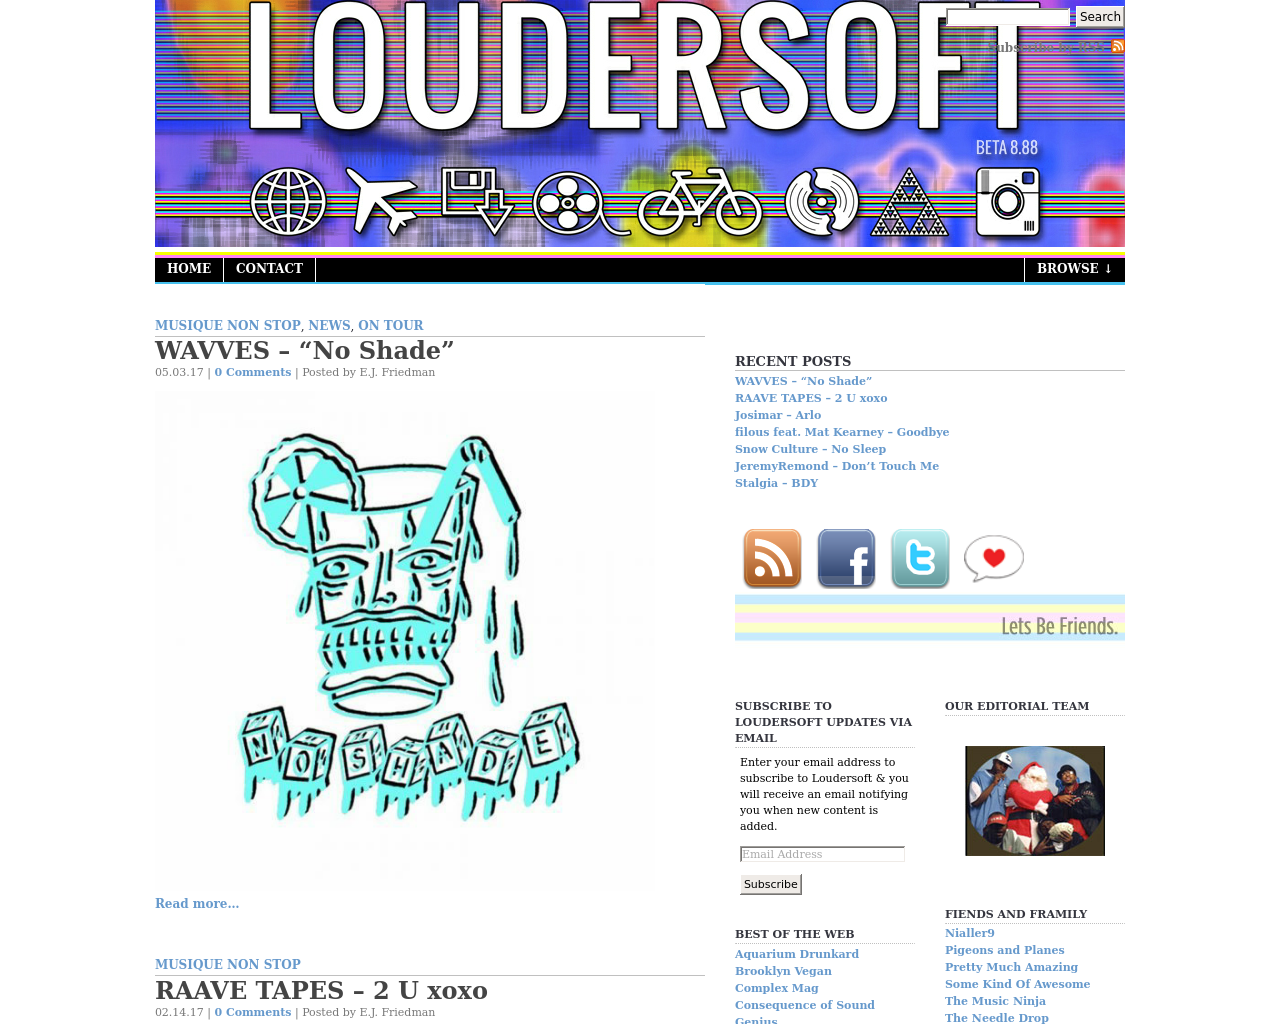 Loudersoft-Advertising-Reviews-Pricing